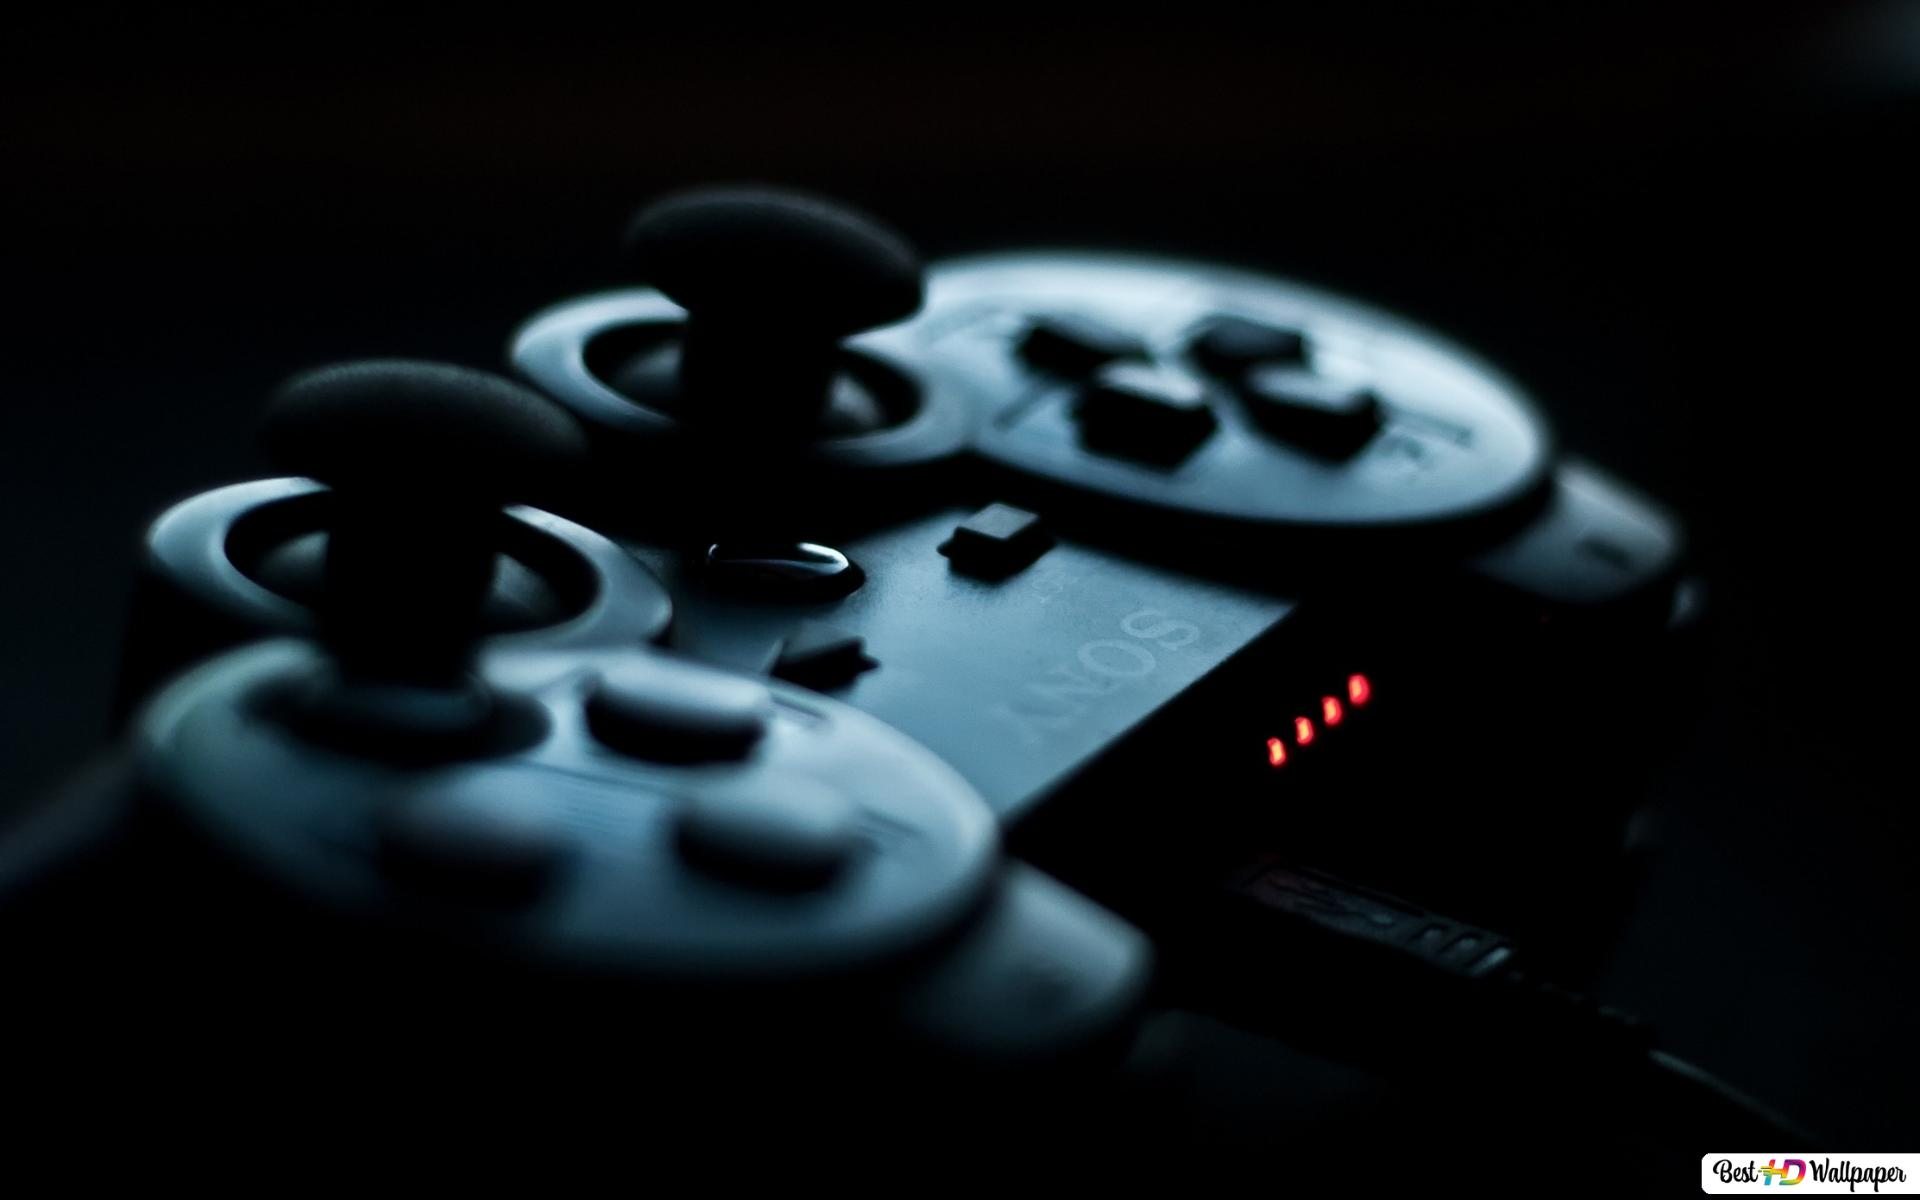 Ps3 Controller Hd Wallpaper Download